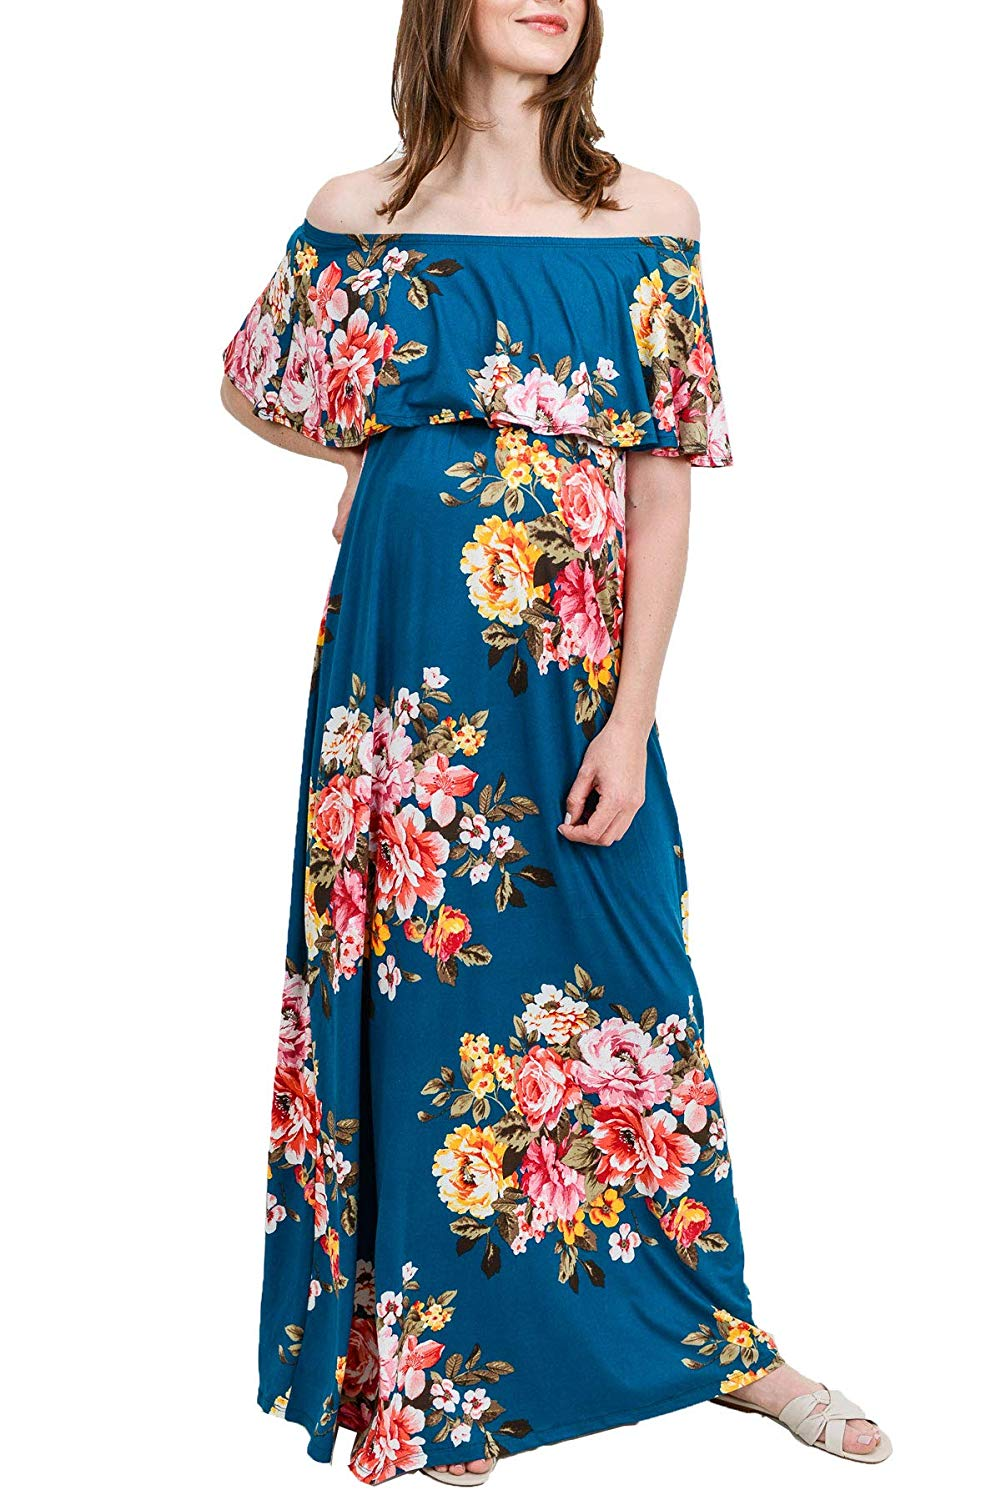 Ruffle Off The Shoulder Maxi Maternity Dress Teal Flower